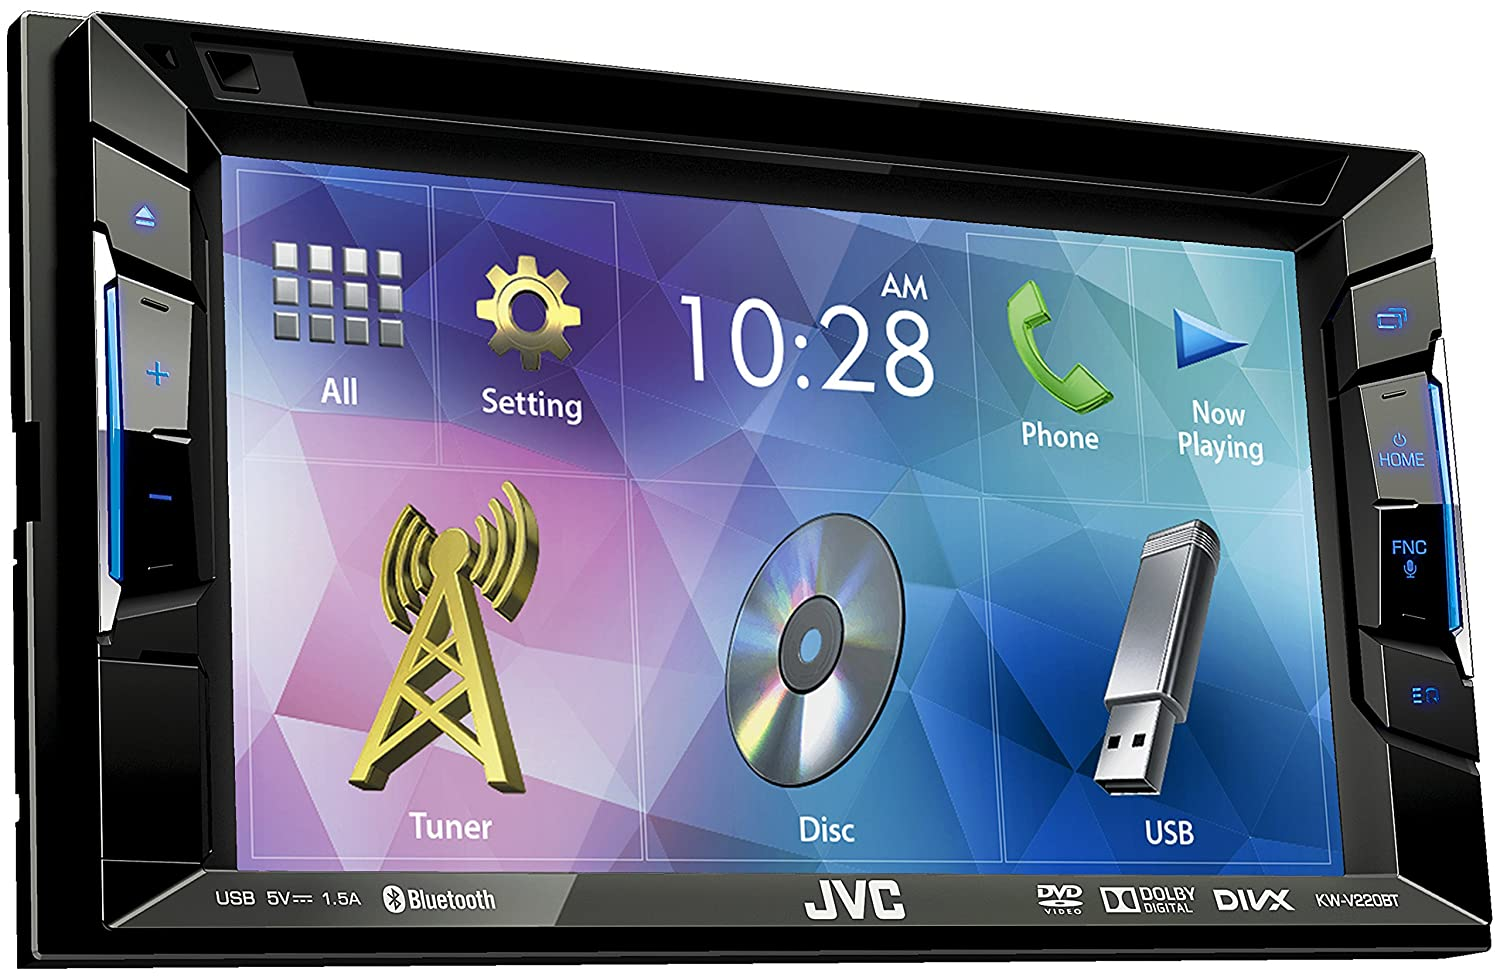 JVC KW-V220BT Car Stereo DVD/USB-Receiver with 6.2-Inch: Amazon.co ...